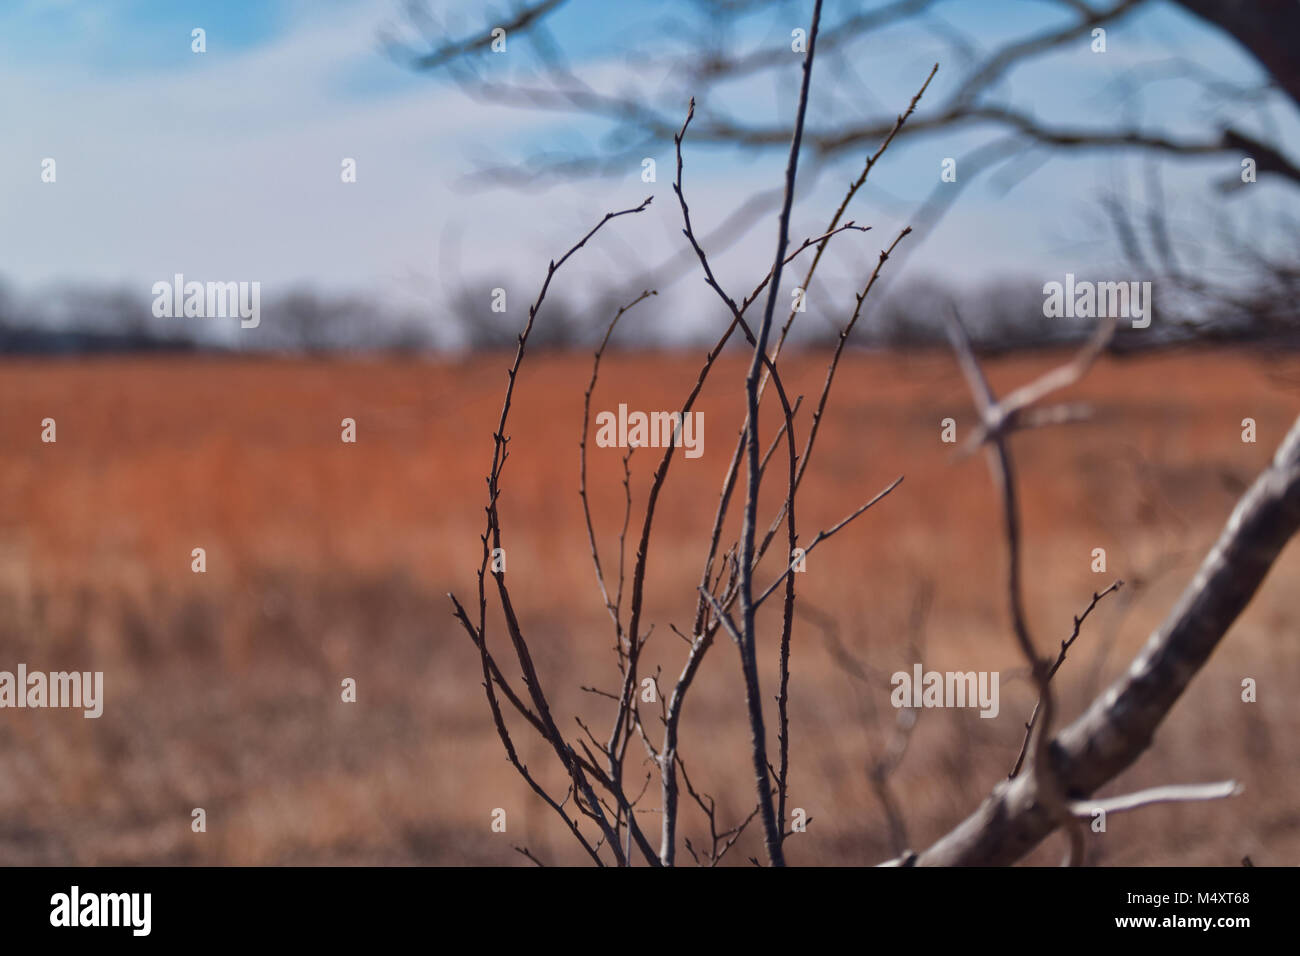 Exploding cattails, with sunny background. - Stock Image